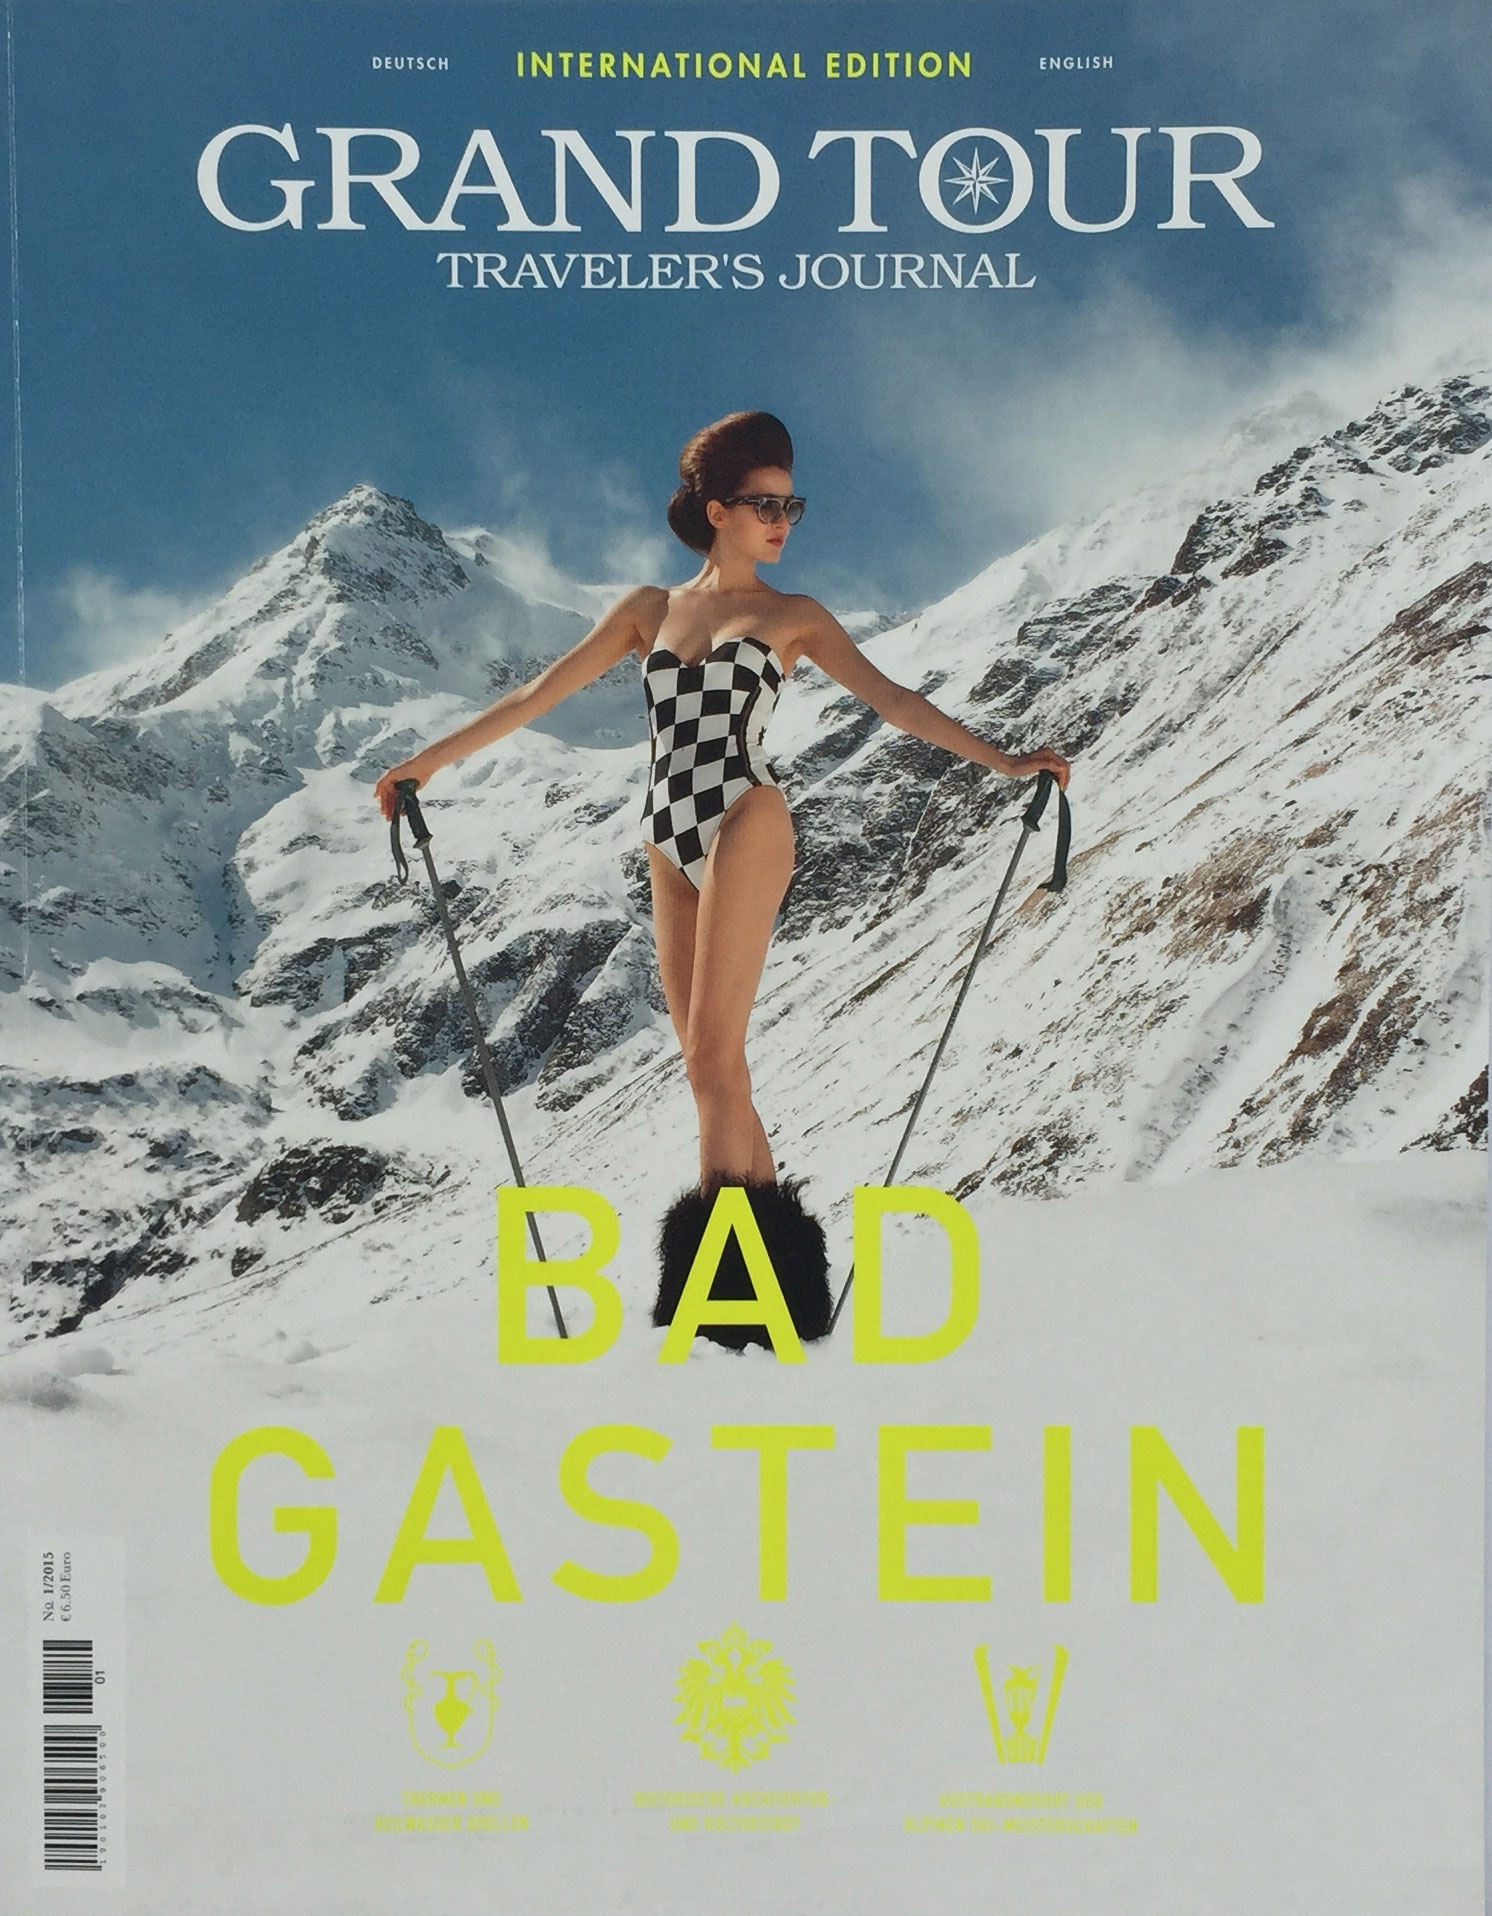 grand tour cover bad gastein